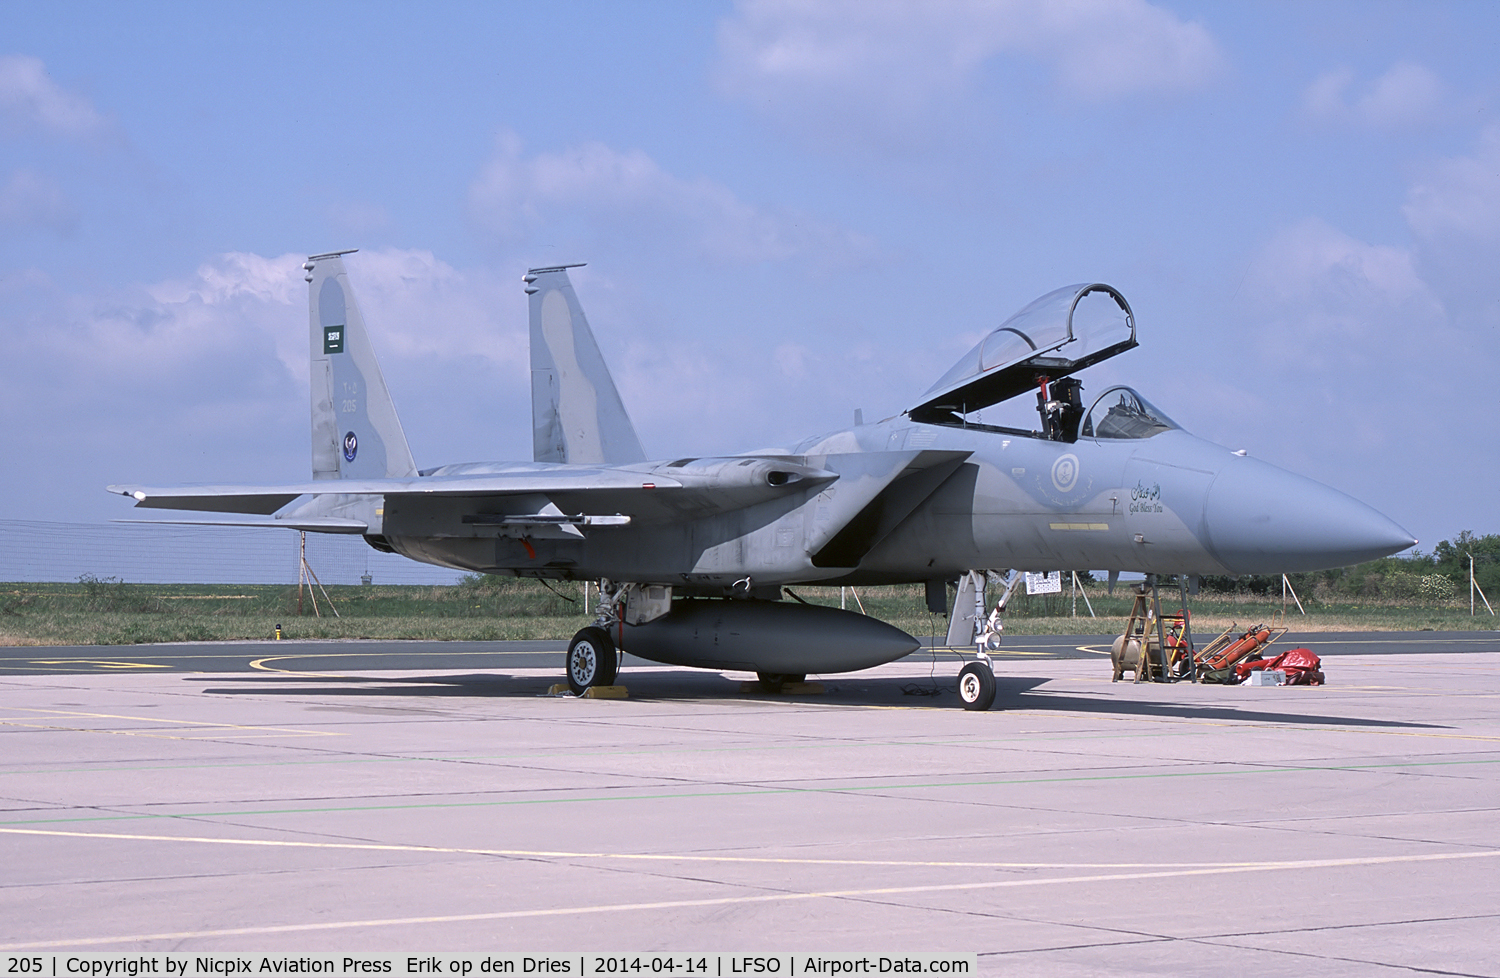 205, McDonnell Douglas F-15C Eagle C/N 0726/012, 205 is a RSAAF F-15C and flew as 80-0073 in USAF Sevice